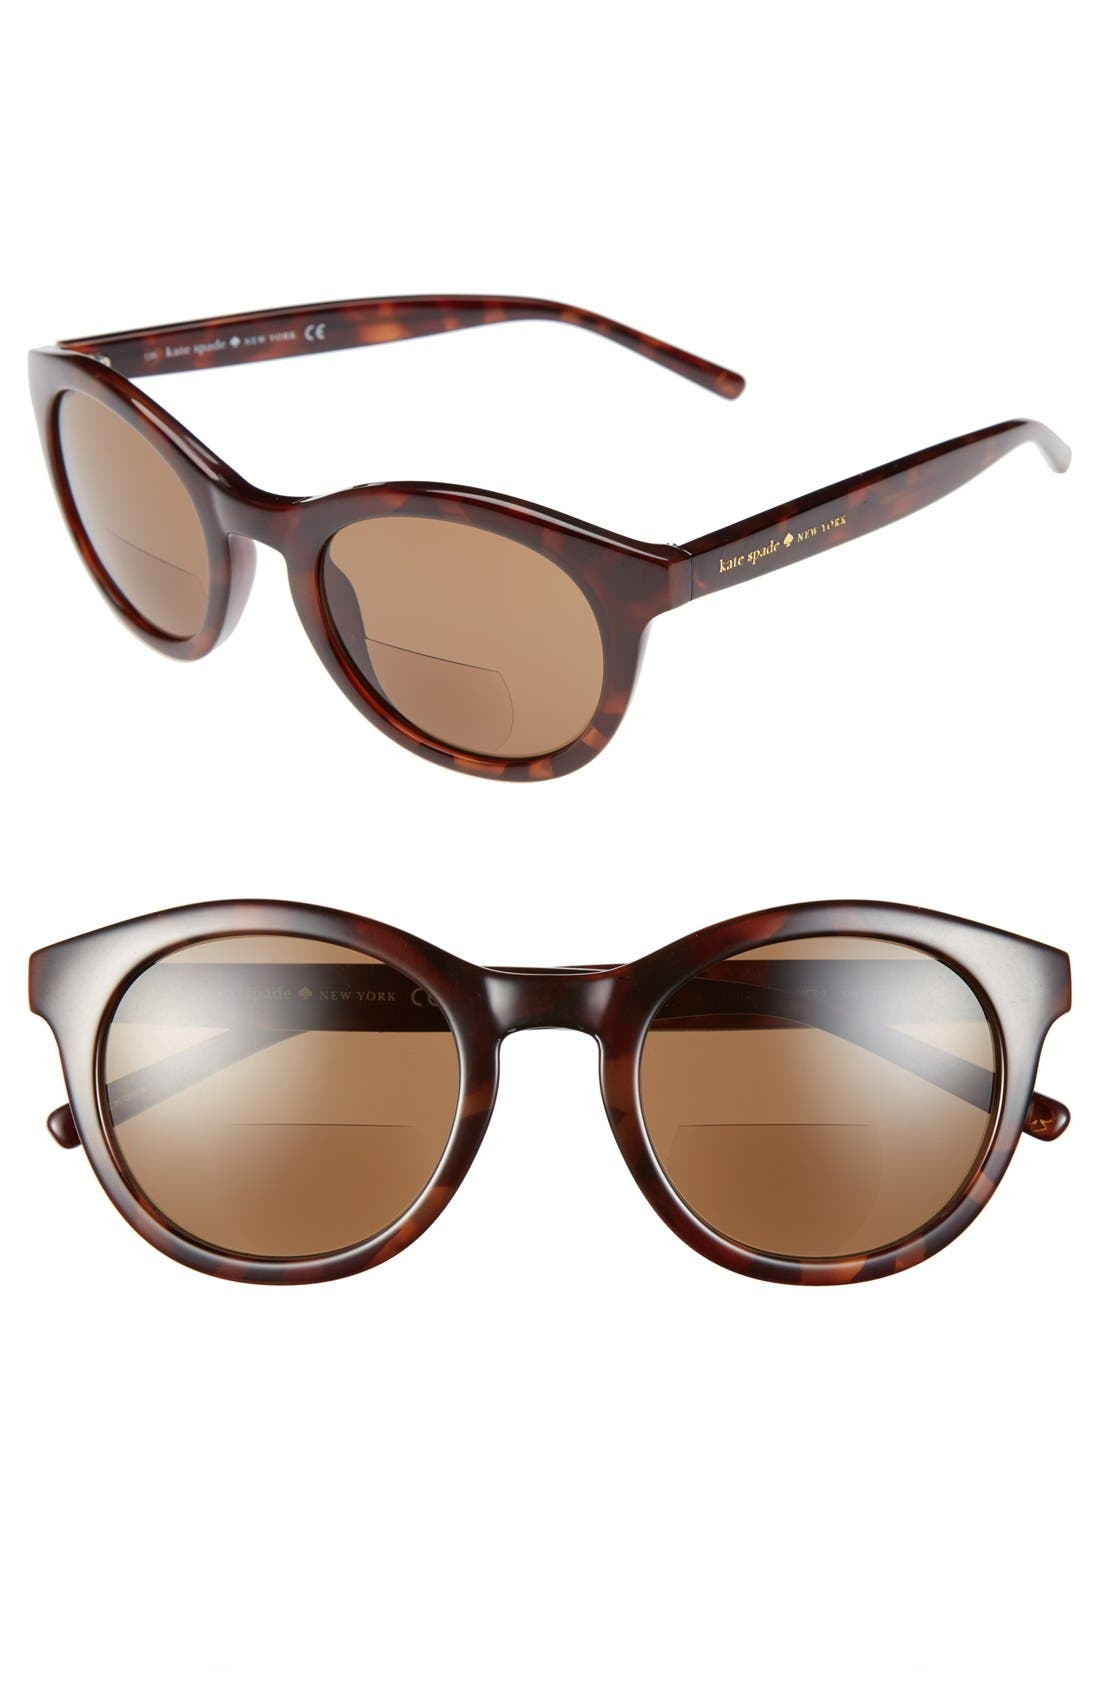 Main Image - kate spade new york 'sunreader' 36mm reading sunglasses (2 for $88)